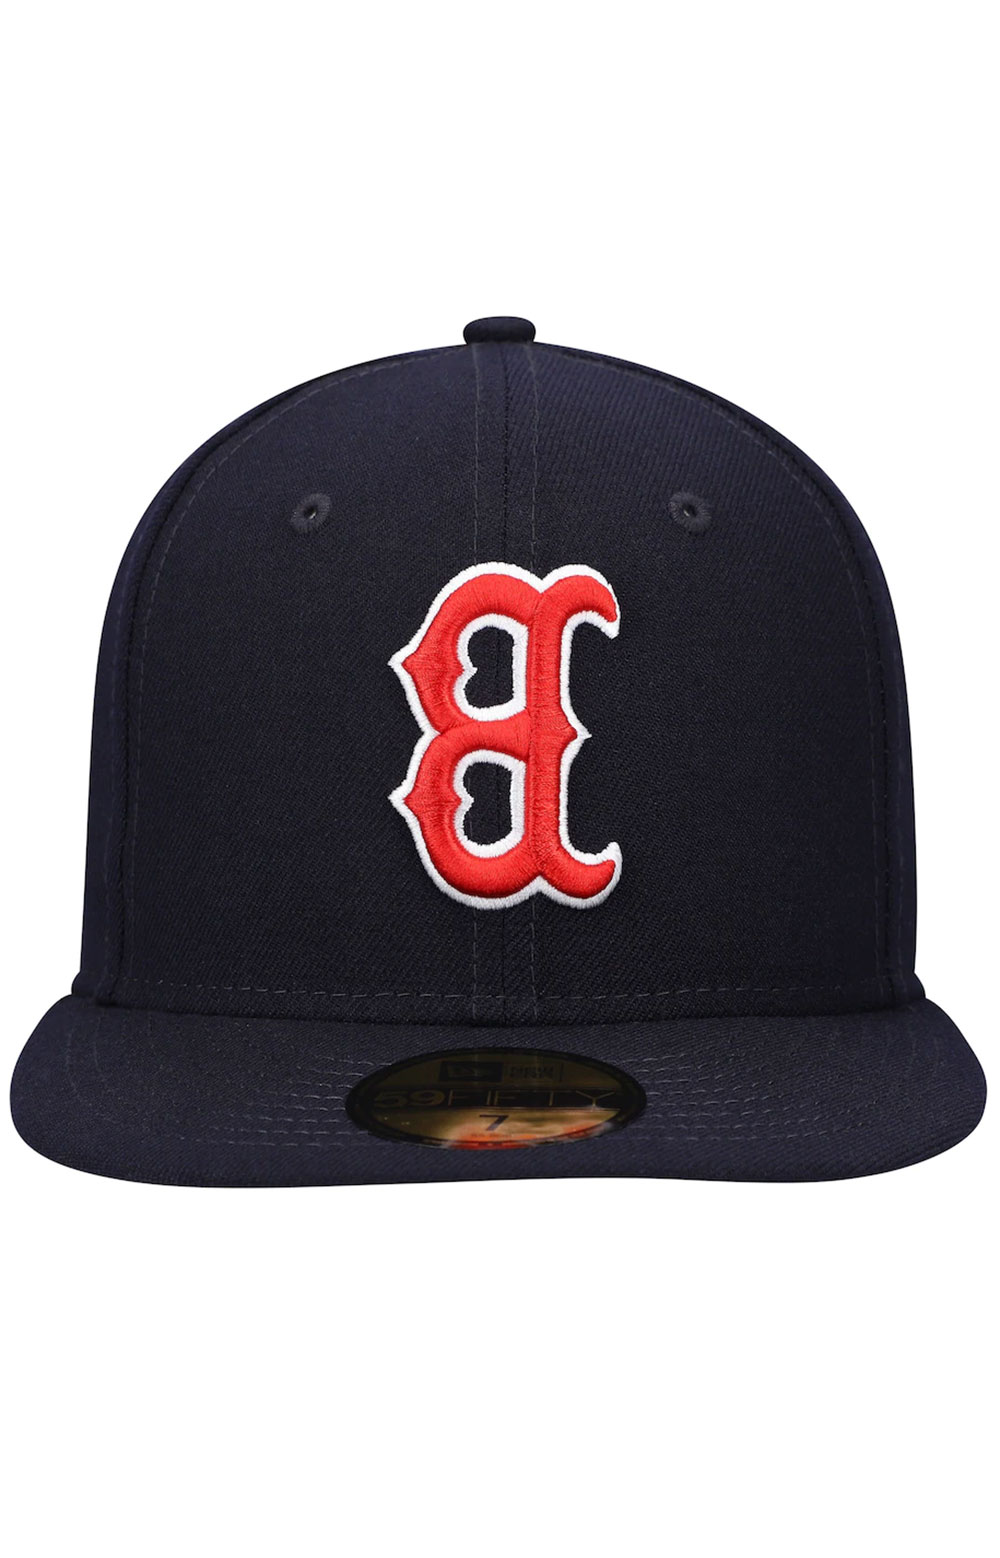 Boston Red Sox Upside Down Logo 59Fifty Fitted Hat - Navy 2